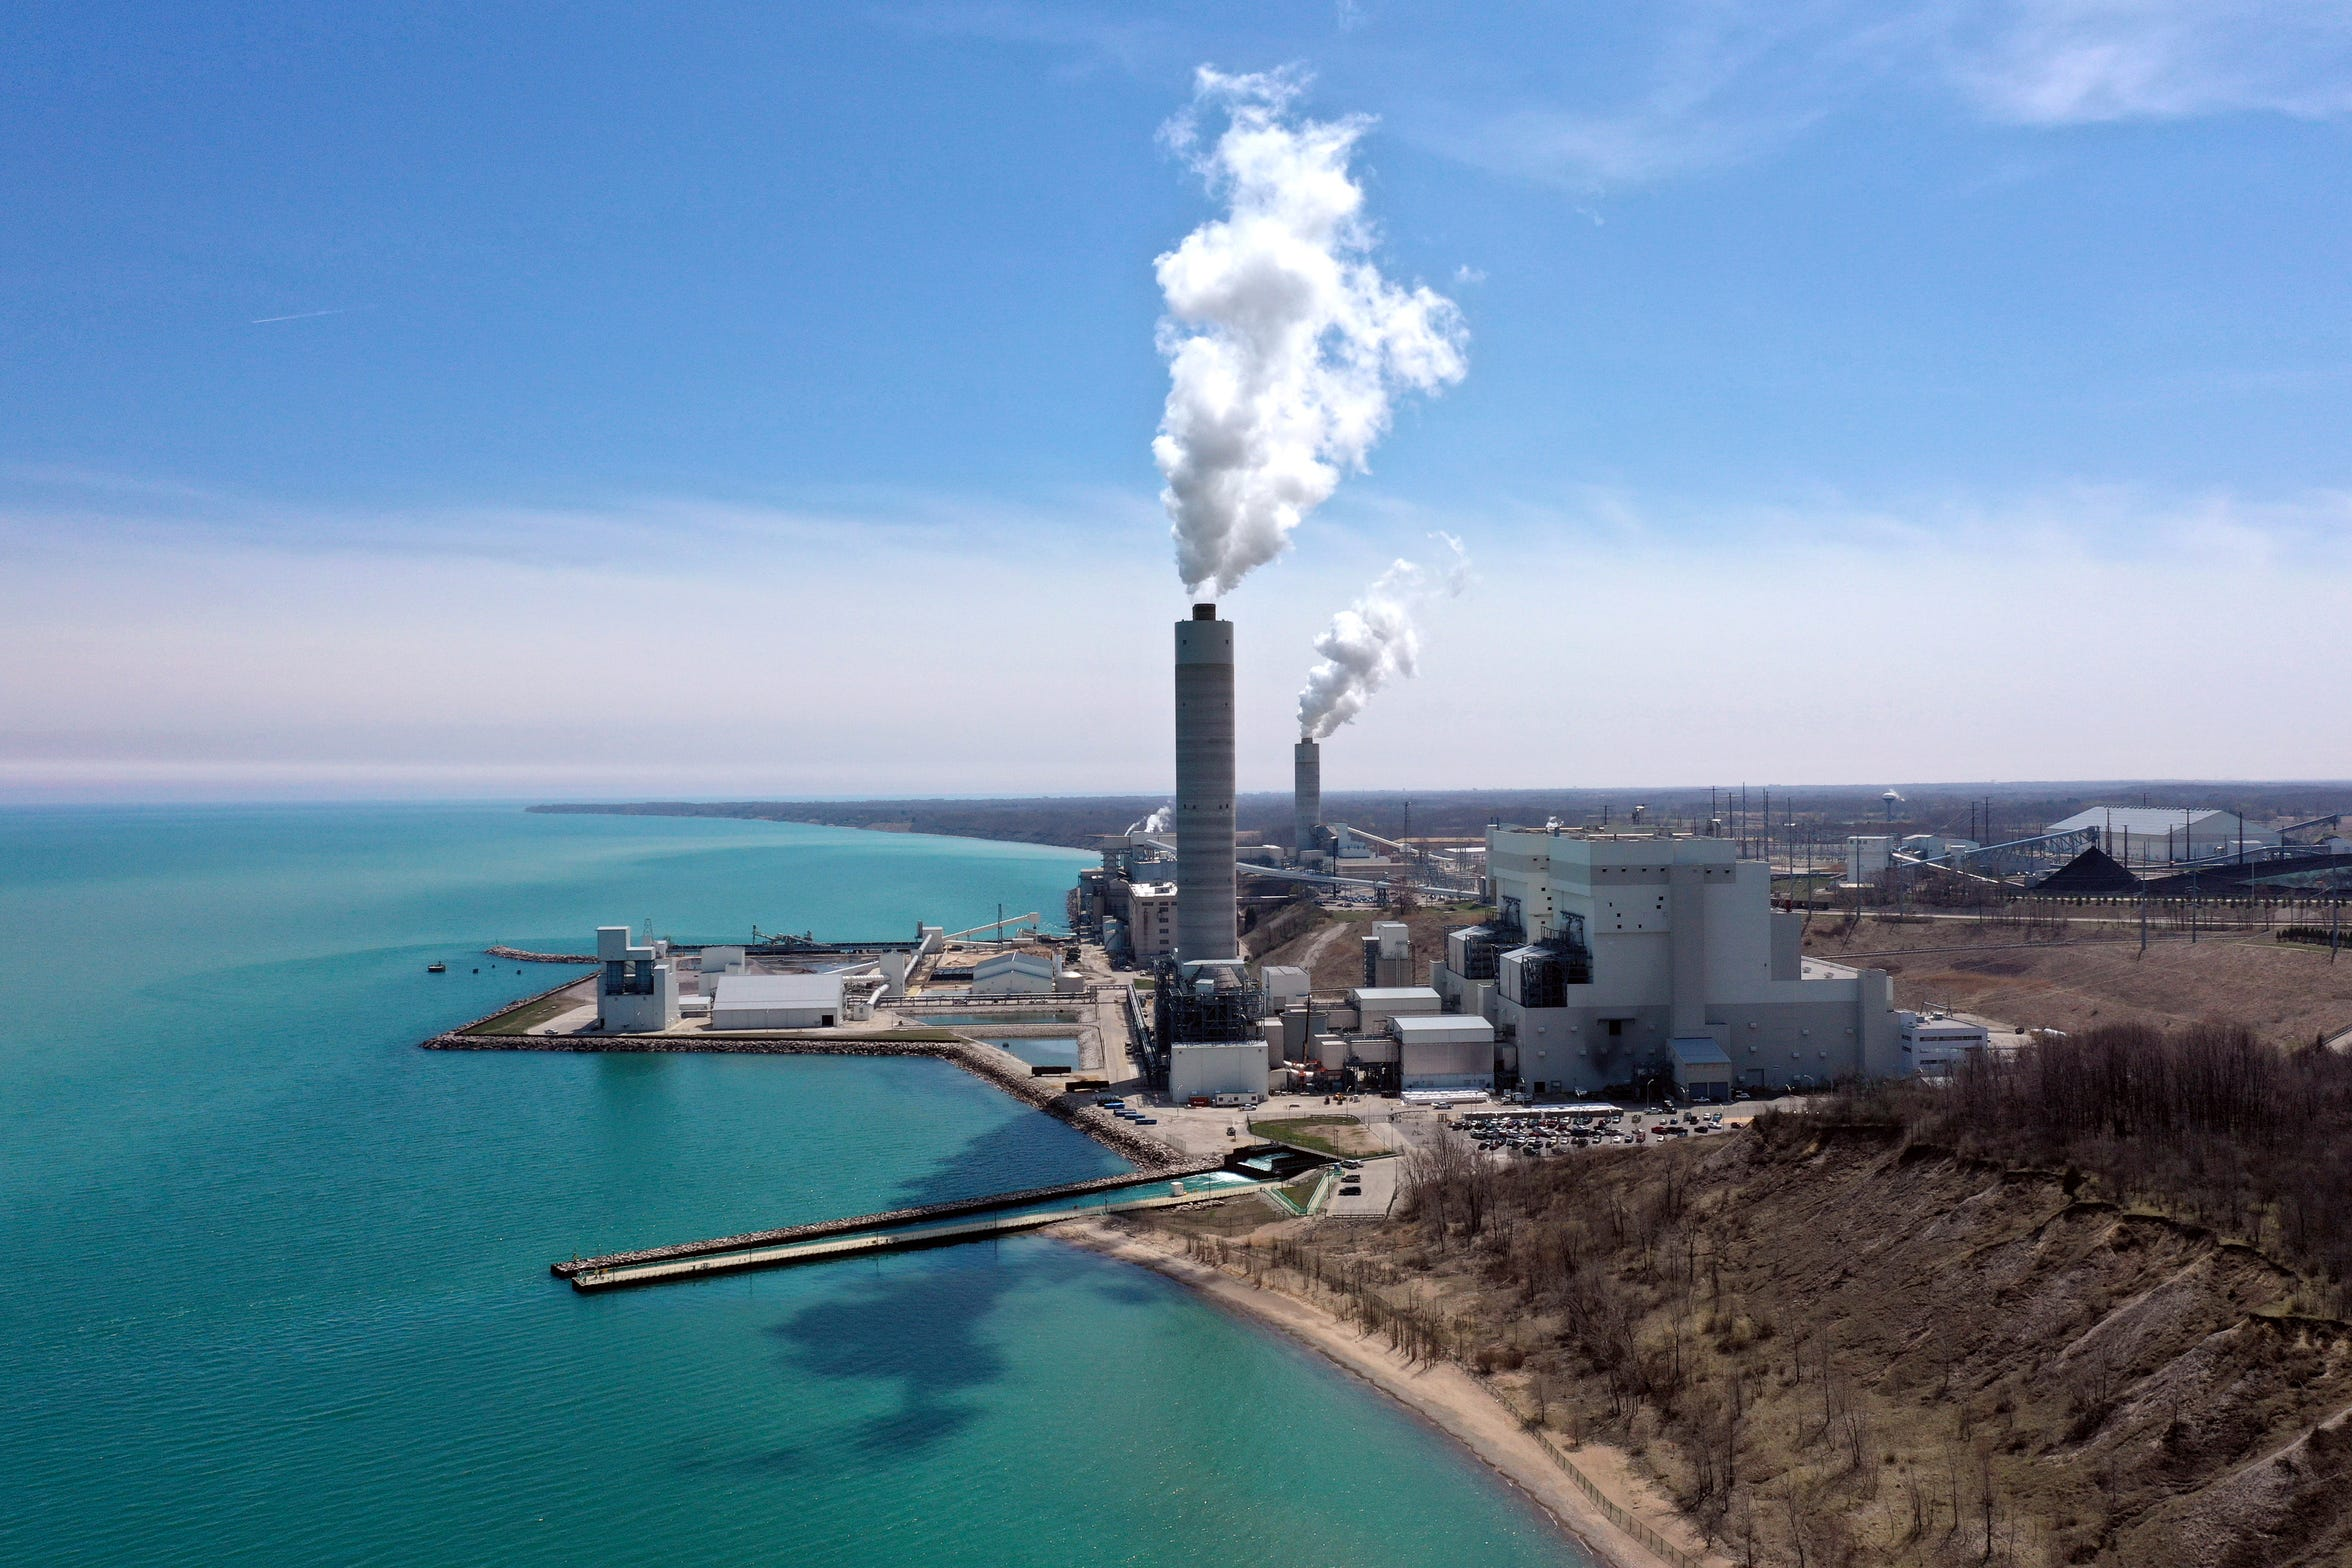 Environmentalists oppose a proposal by We Energies to change the way mercury is measured in water that it discharges to Lake Michigan from the Oak Creek Power Plant and Elm Road Generating Station, seen here on April 25. The plants, in Oak Creek, near Milwaukee, are coal-fired electrical power stations. A new study finds mercury in Wisconsin lakes could be harder to manage as climate change causes fluctuations in lake levels.